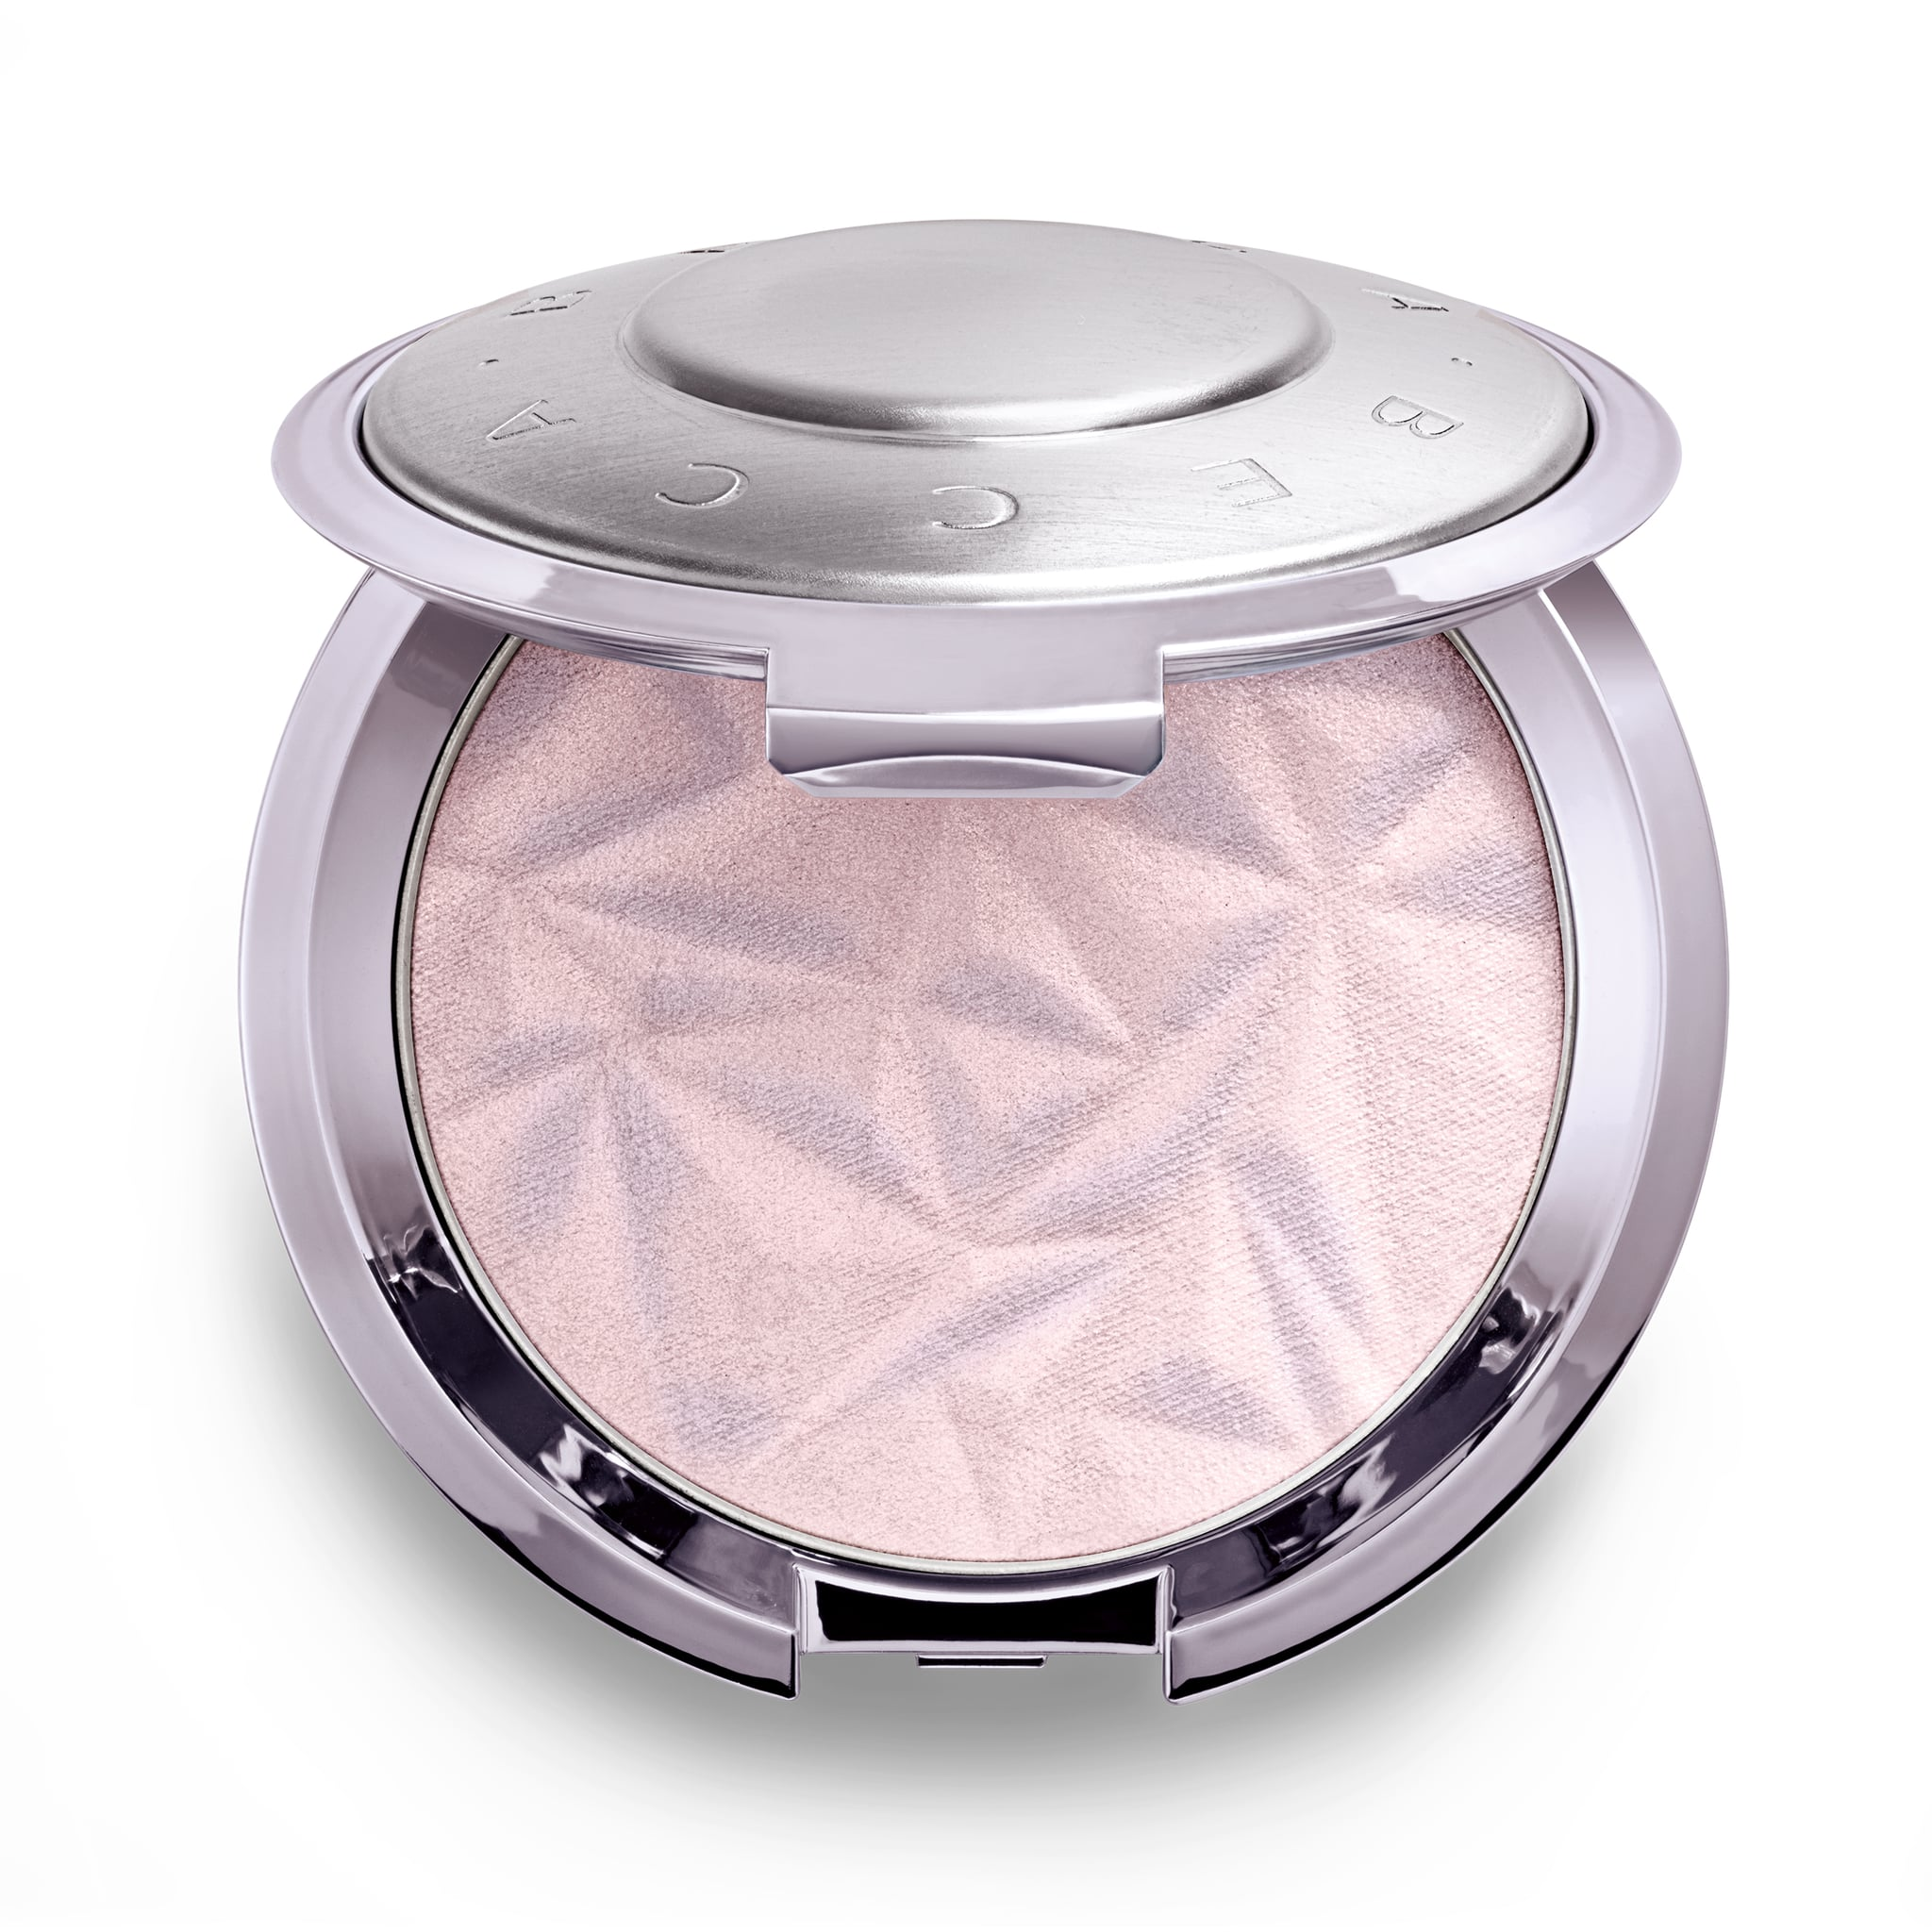 94564ec5f48de5a7 BECCA Shimmering Skin Perfector Pressed Prismatic Amethyst Beccas New Limited Edition Holographic Highligher Is Totally Team Unicorn